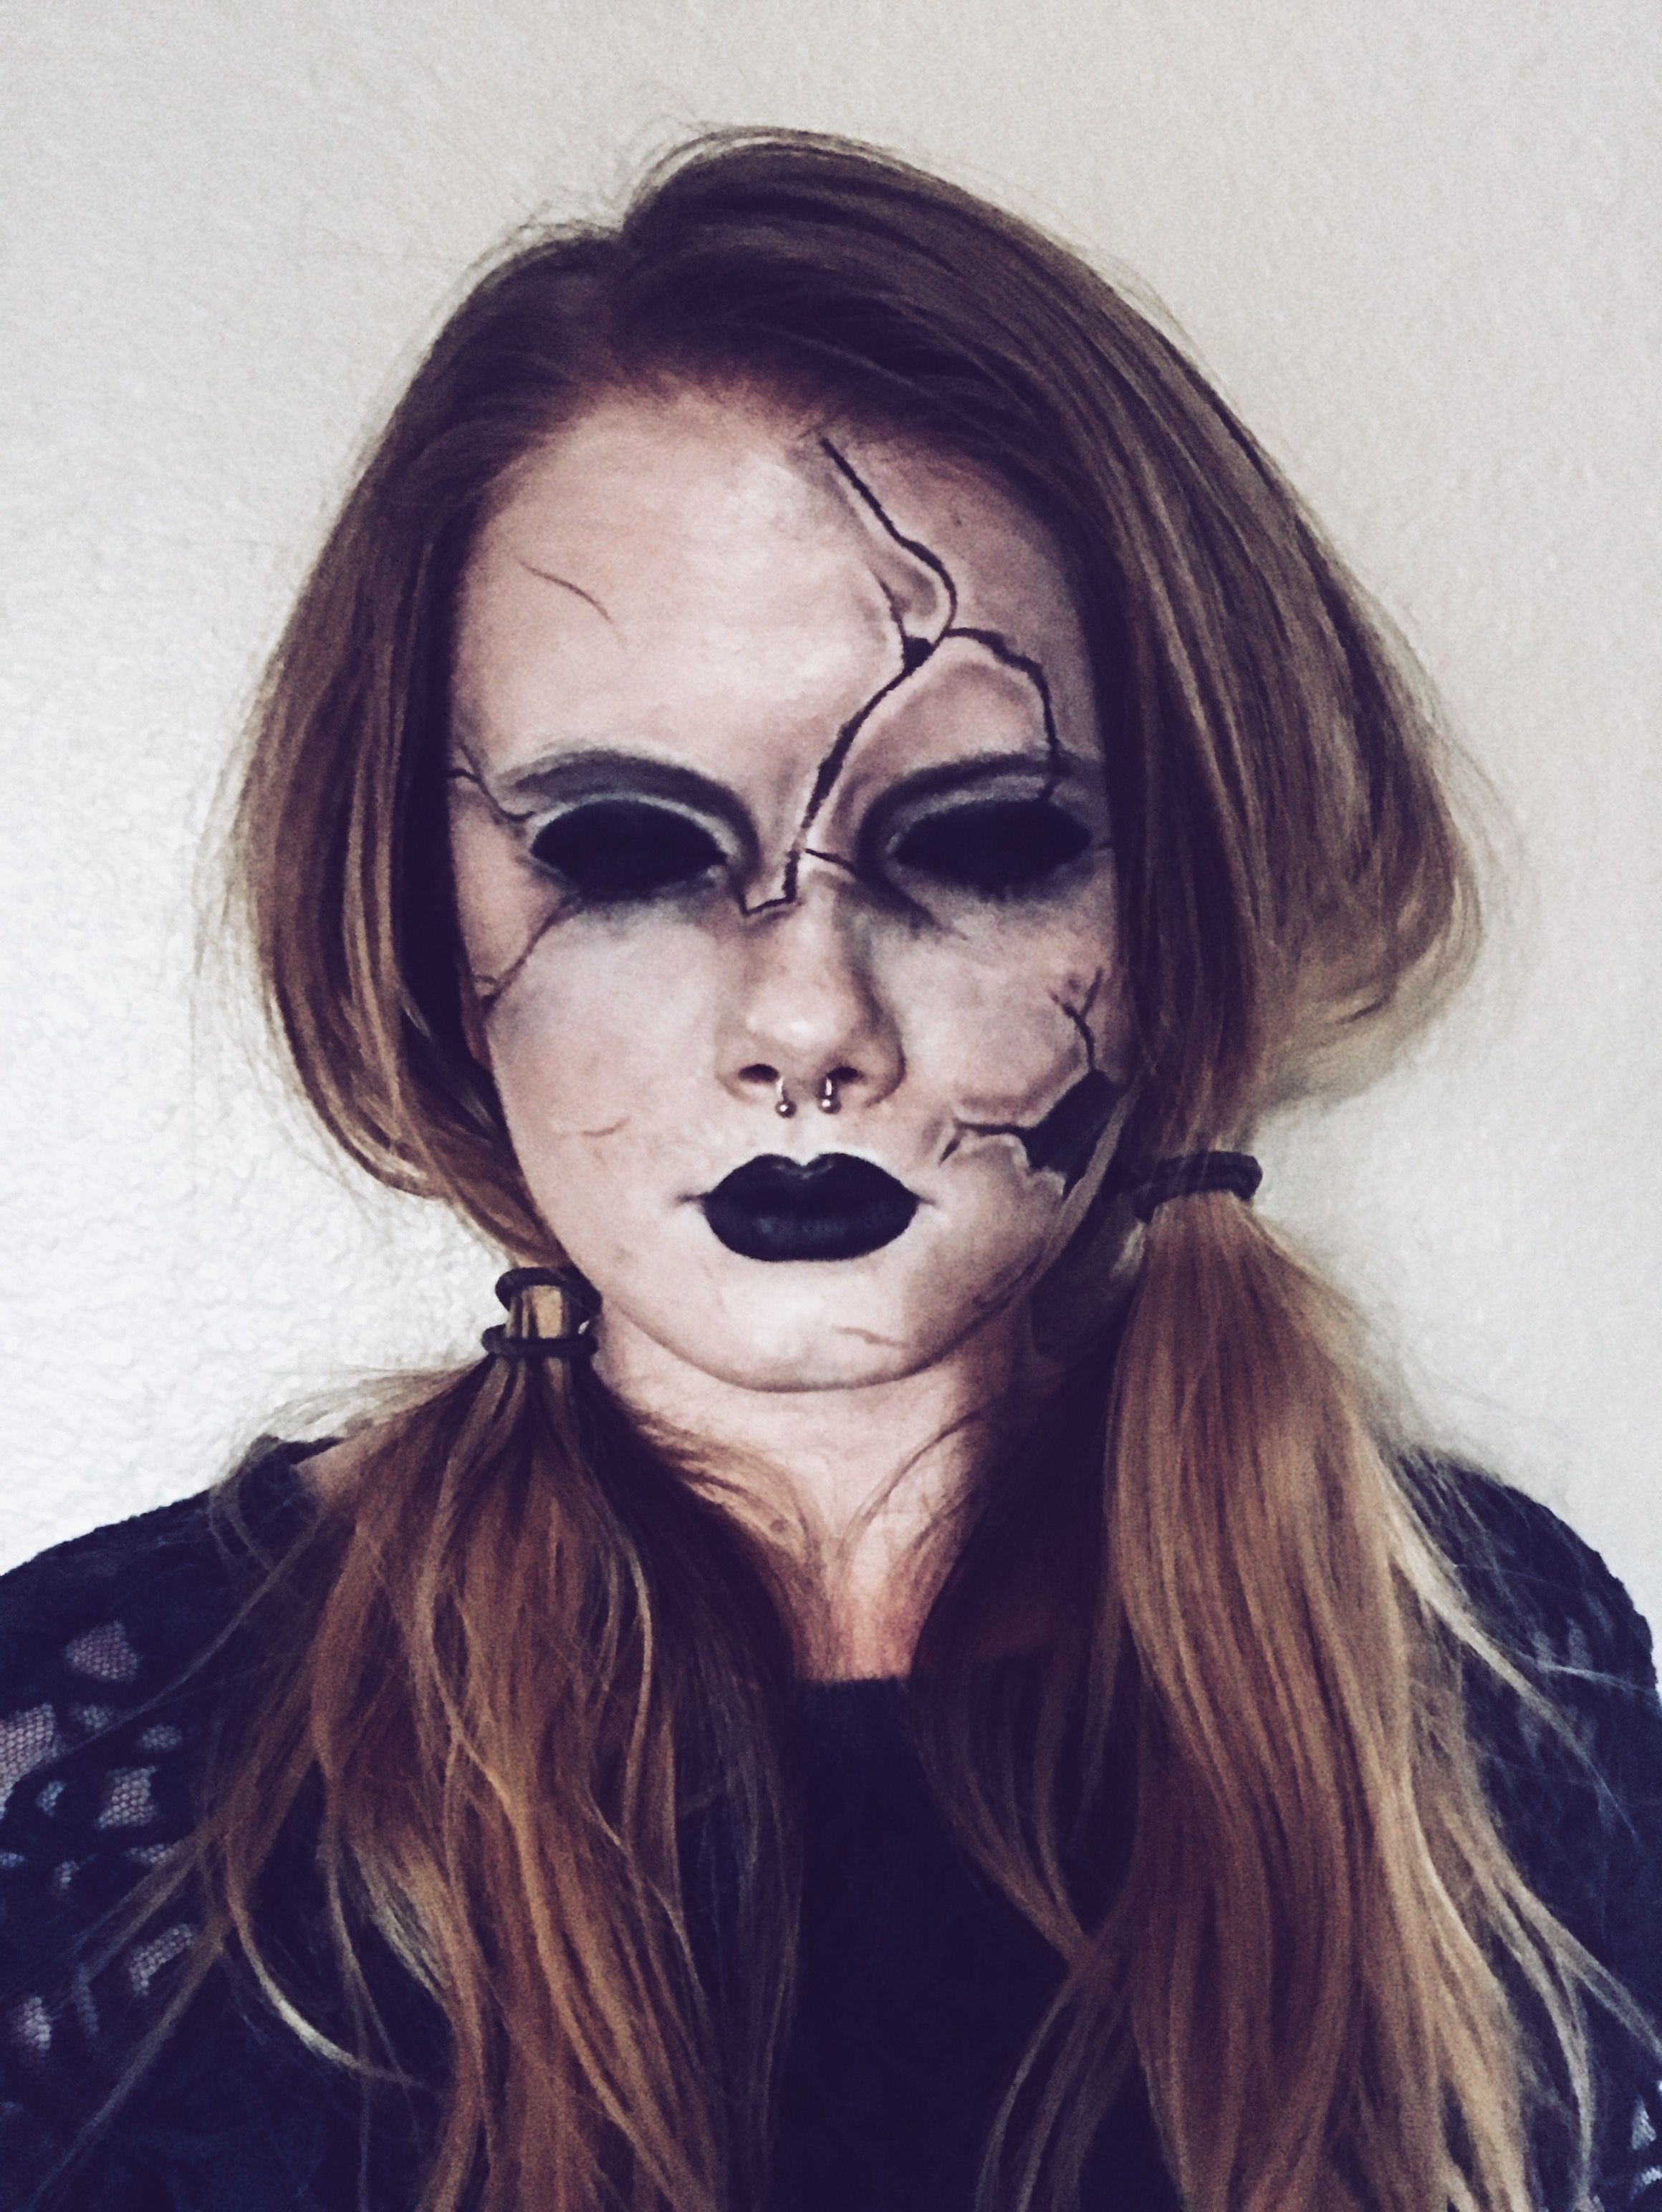 Creepy Scary Doll Makeup Vanessa Lopez55 Instagram For More With